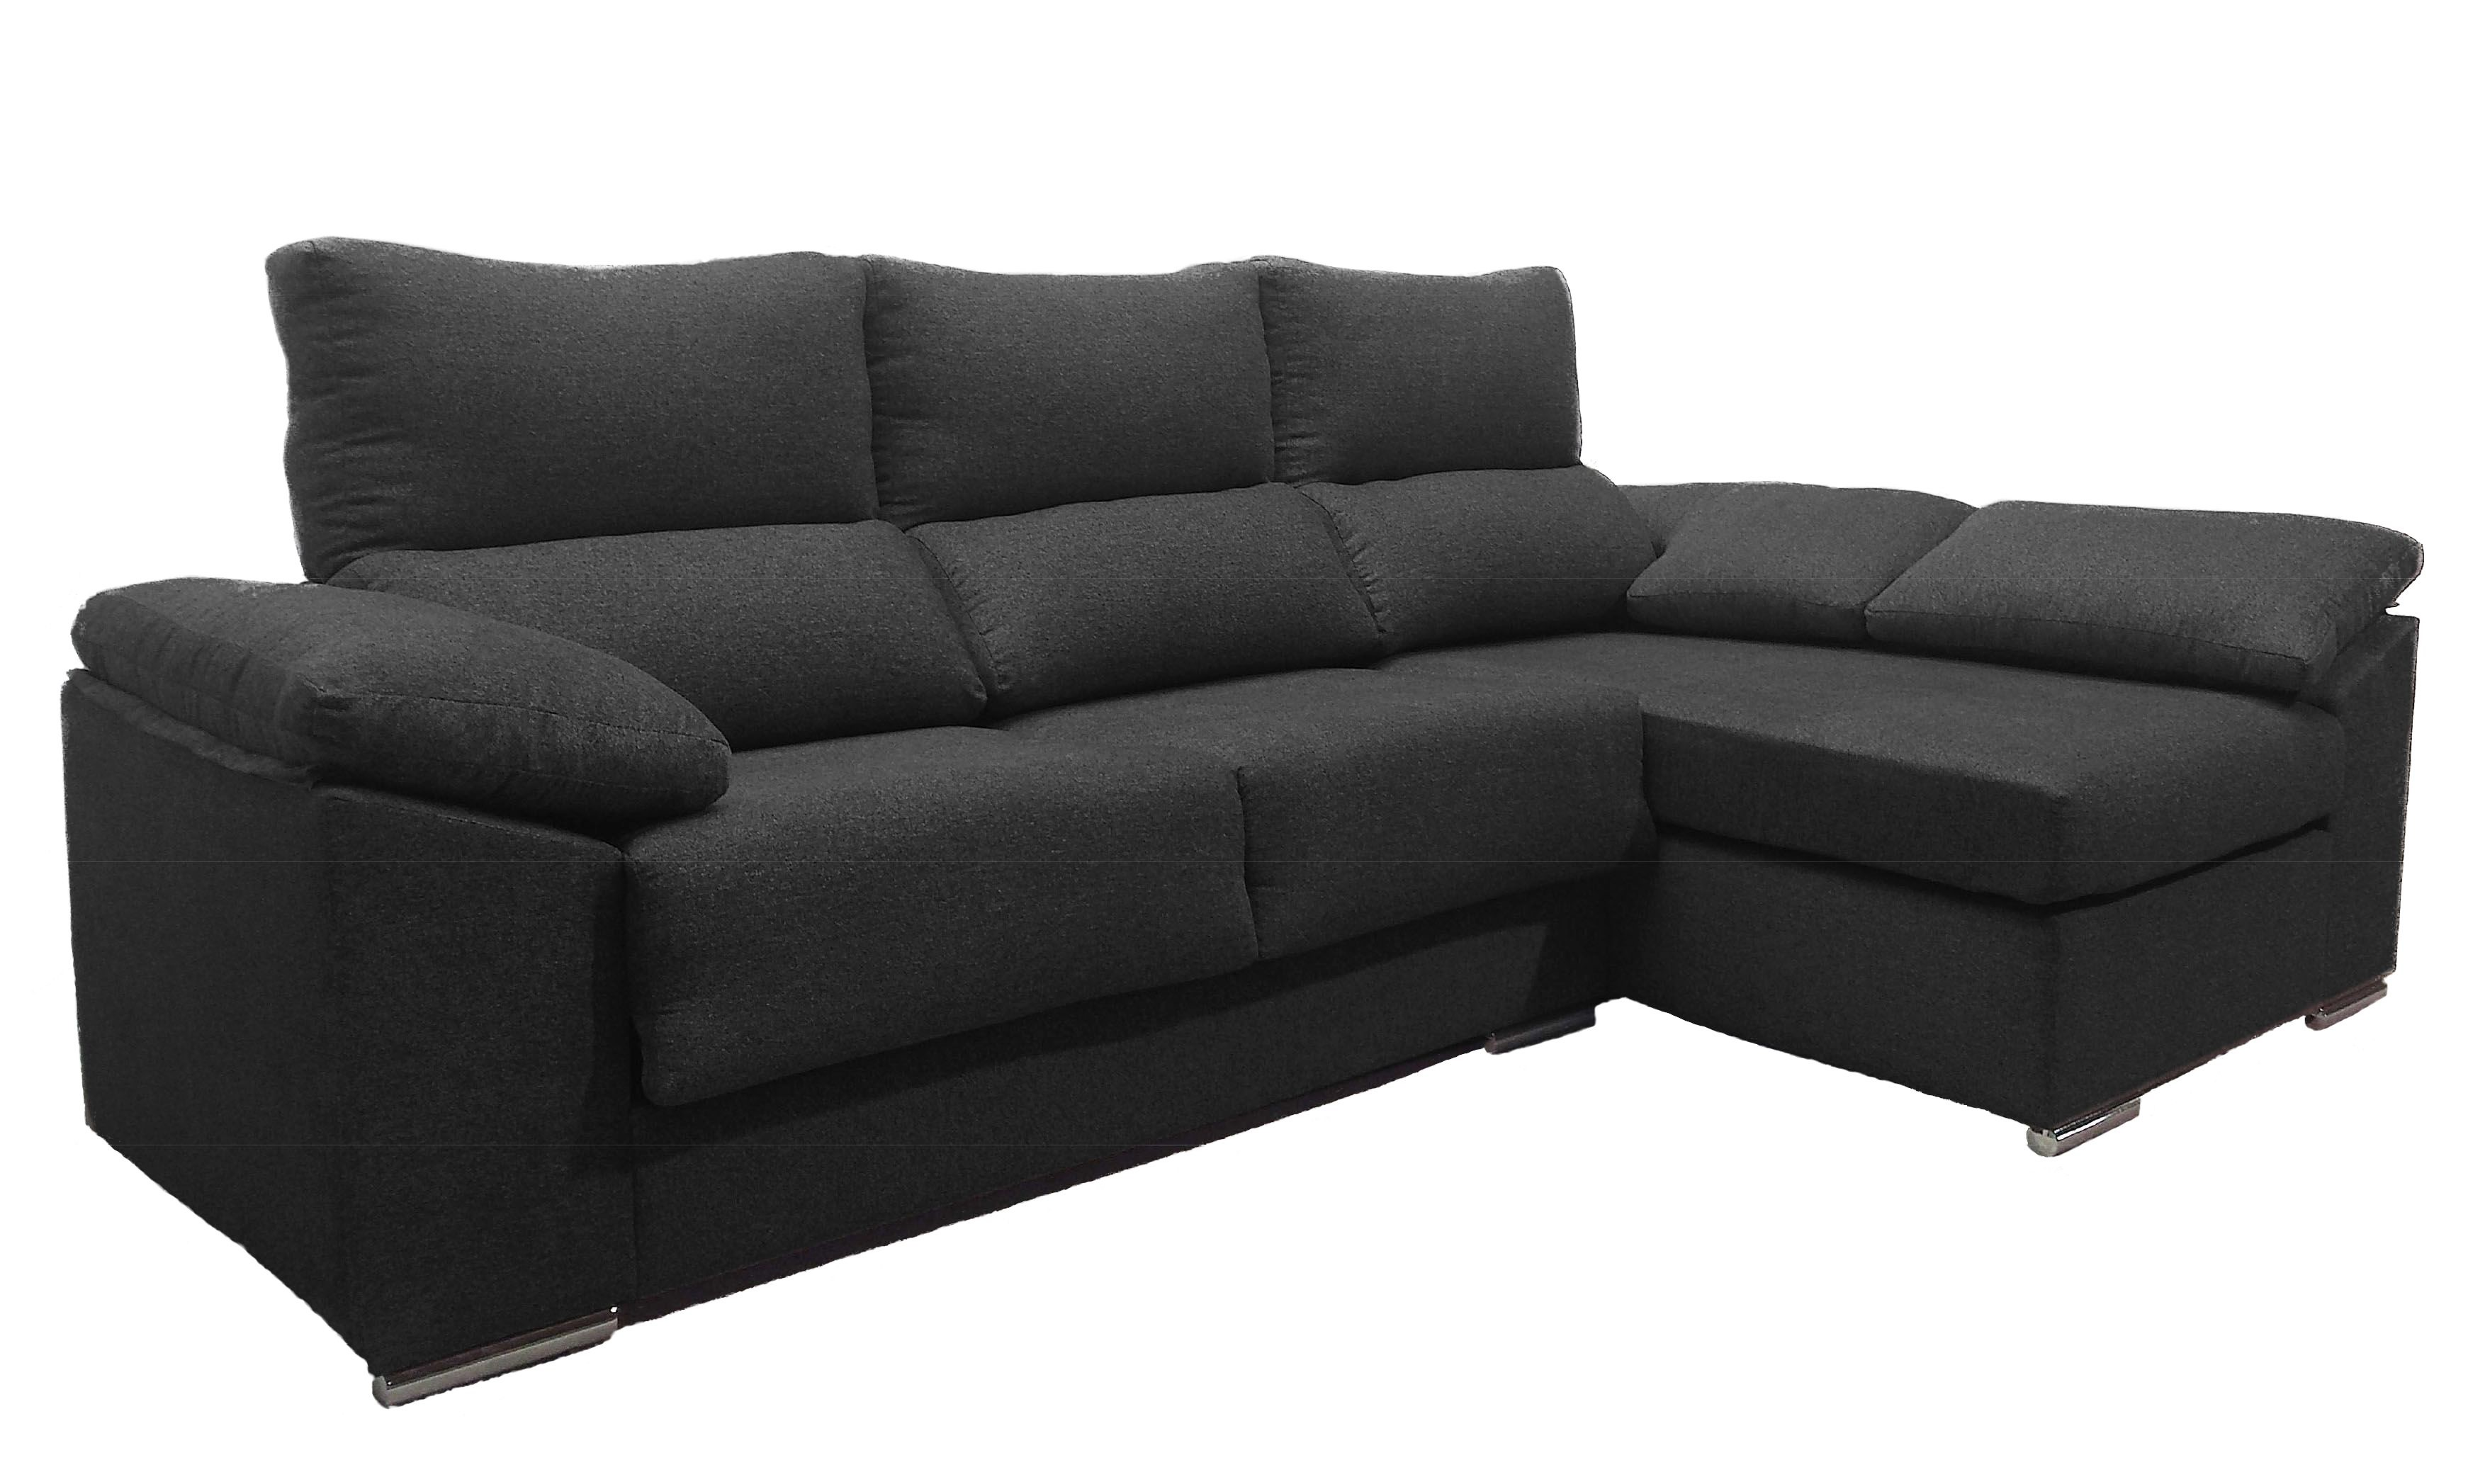 Sofas com chaise longue baratos sofa the honoroak - Sofa rinconera con chaise longue ...